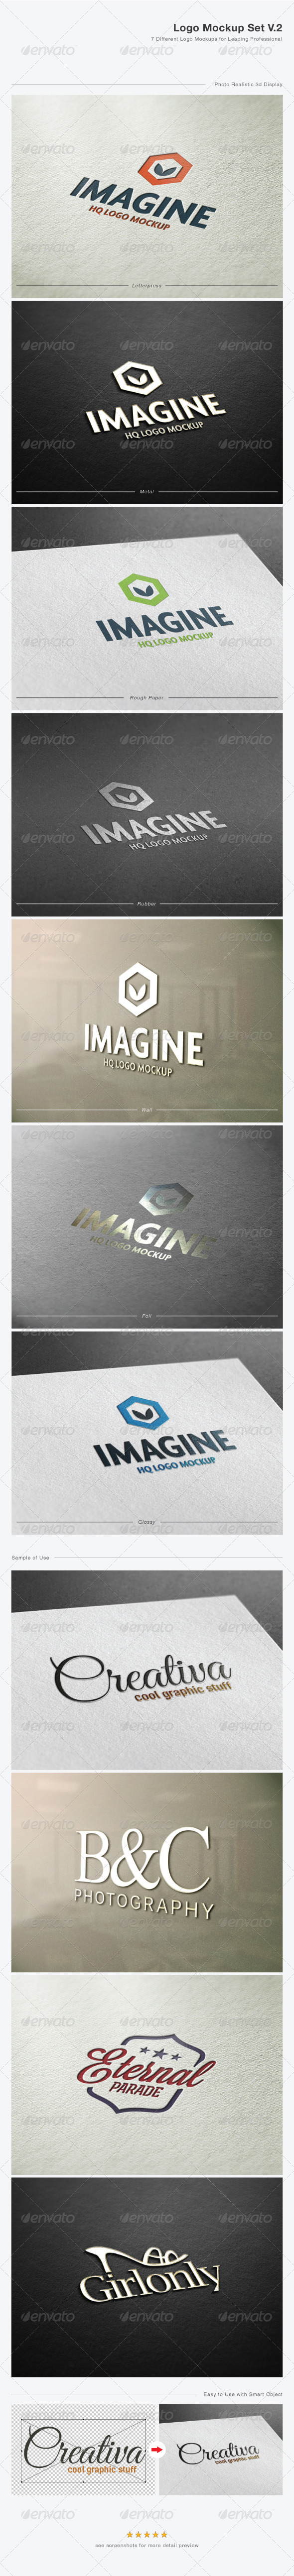 GraphicRiver Logo Mock-Up Set V.2 4666460